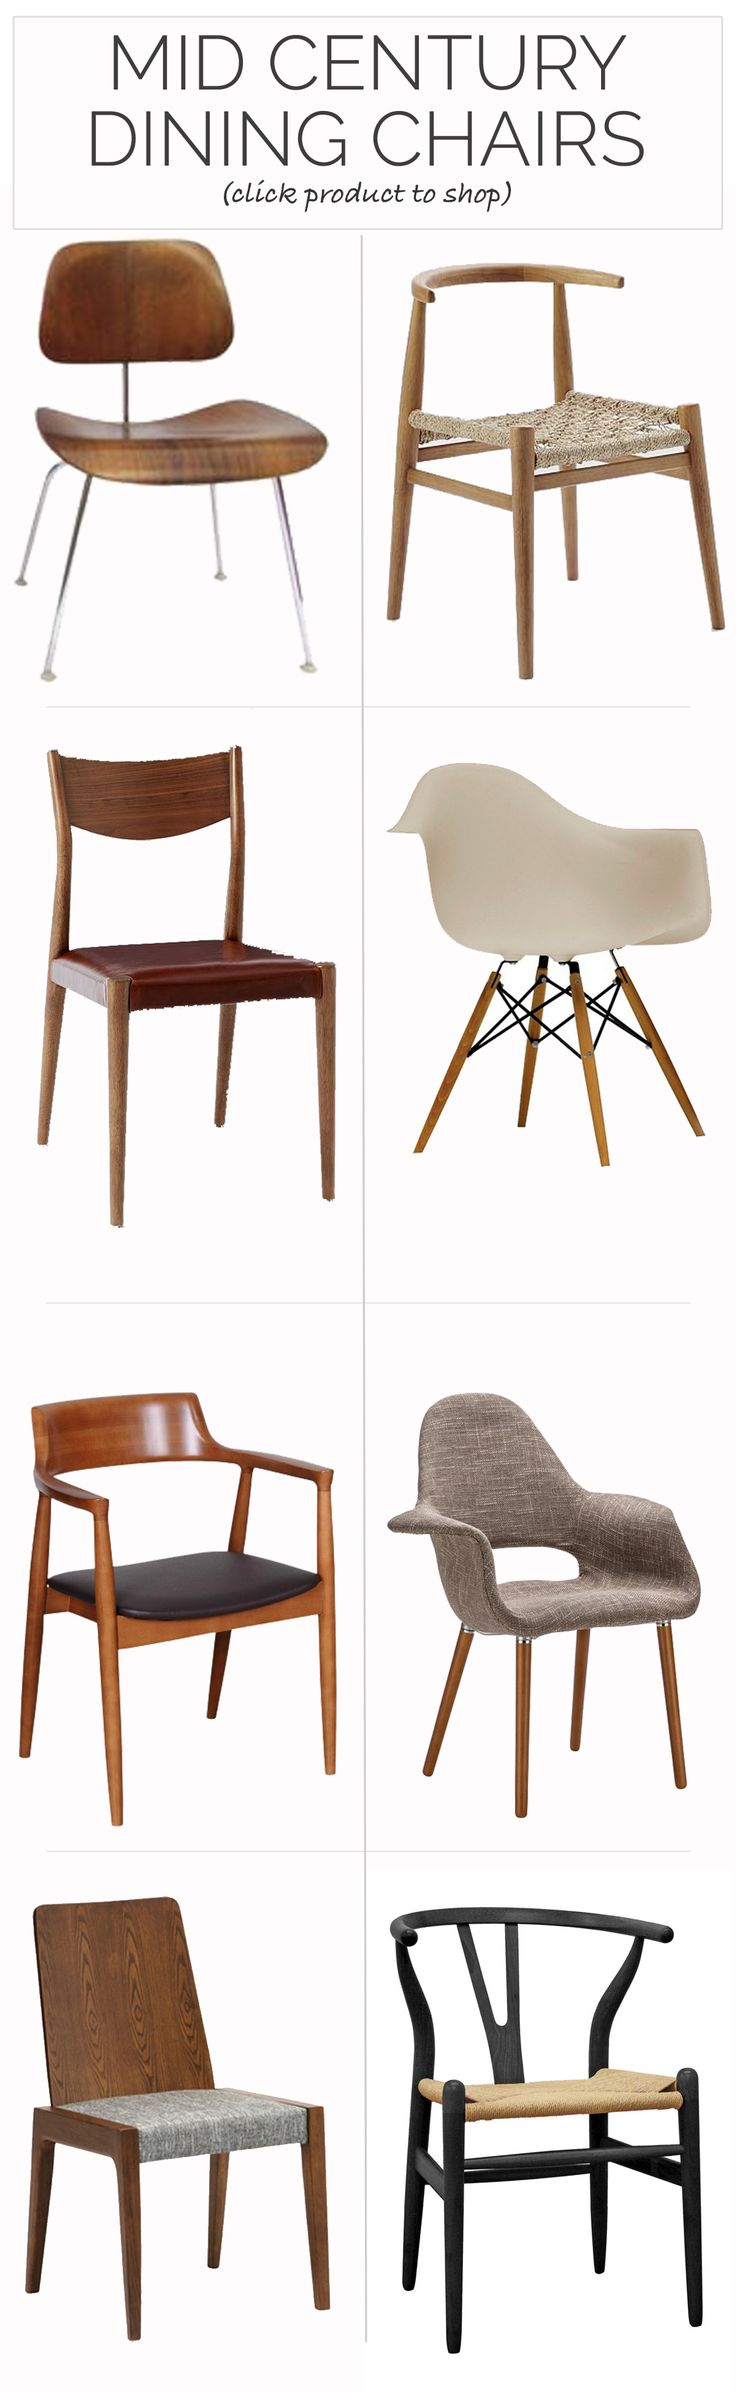 the best mid century dining chairs - Best Dining Chairs